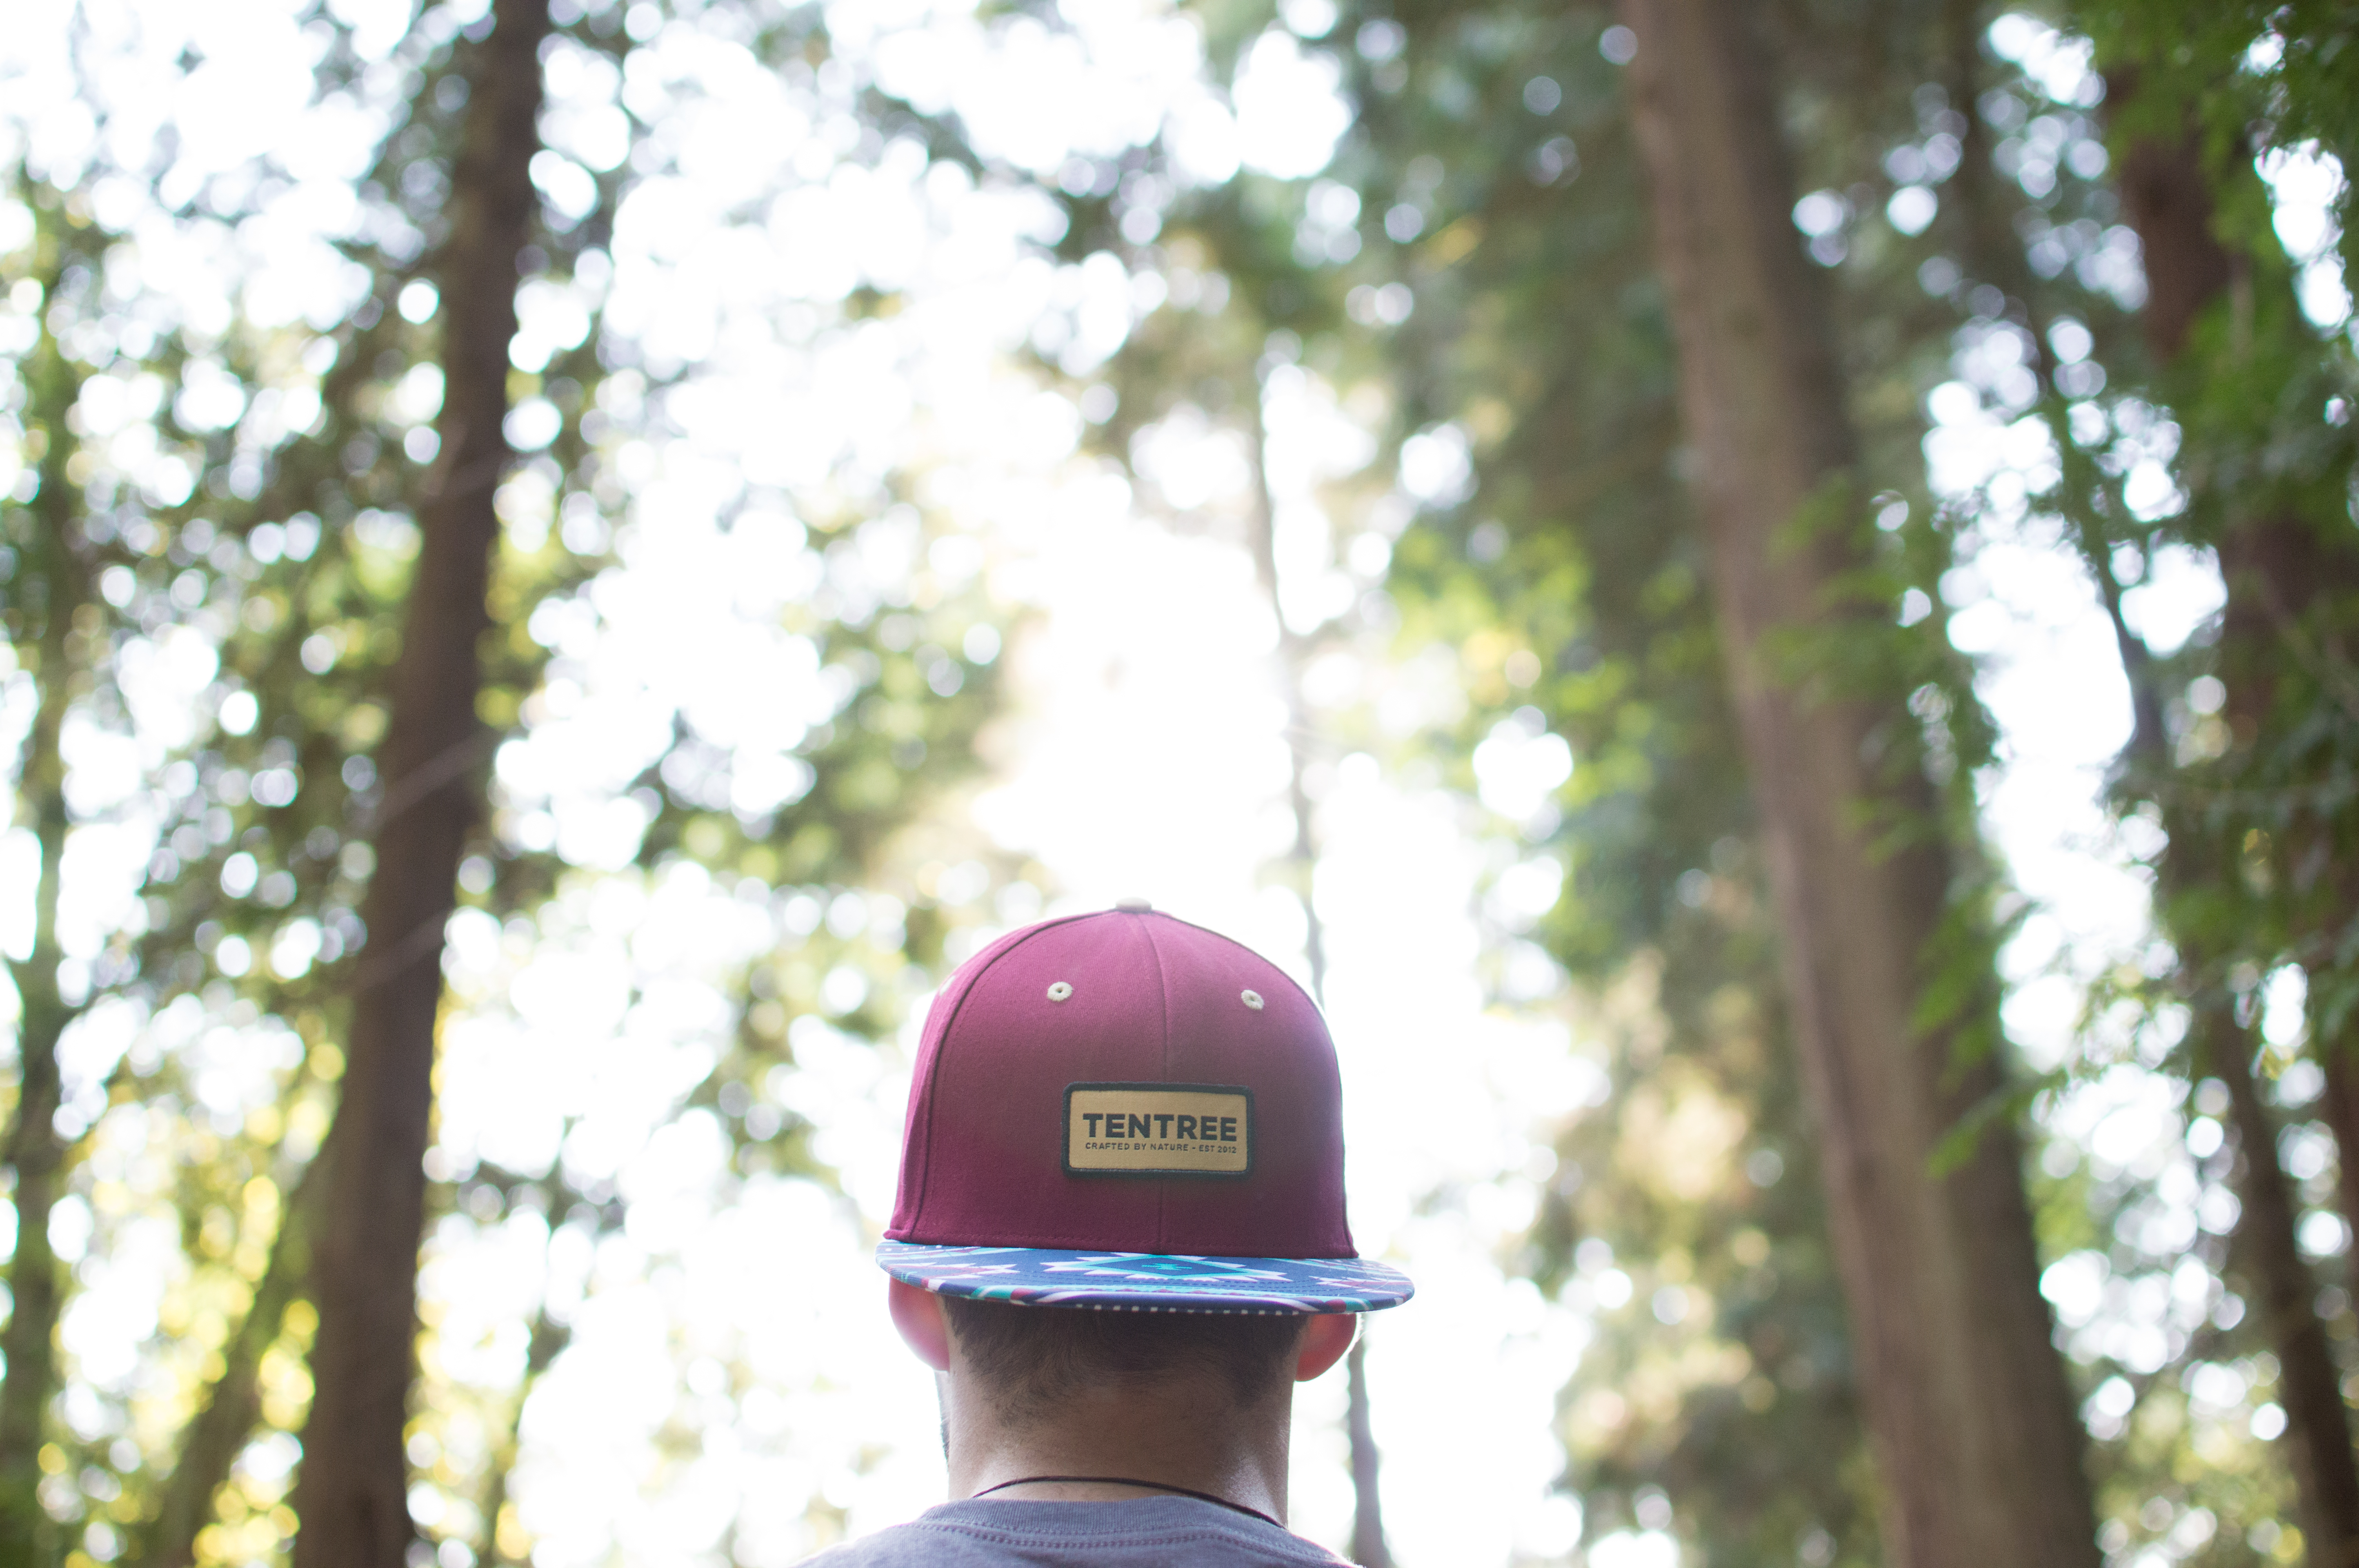 competitive price 32825 f008a Hump Day Must Have The Hat You NEED For Earth Day. image number 17 of lids  tentree ...